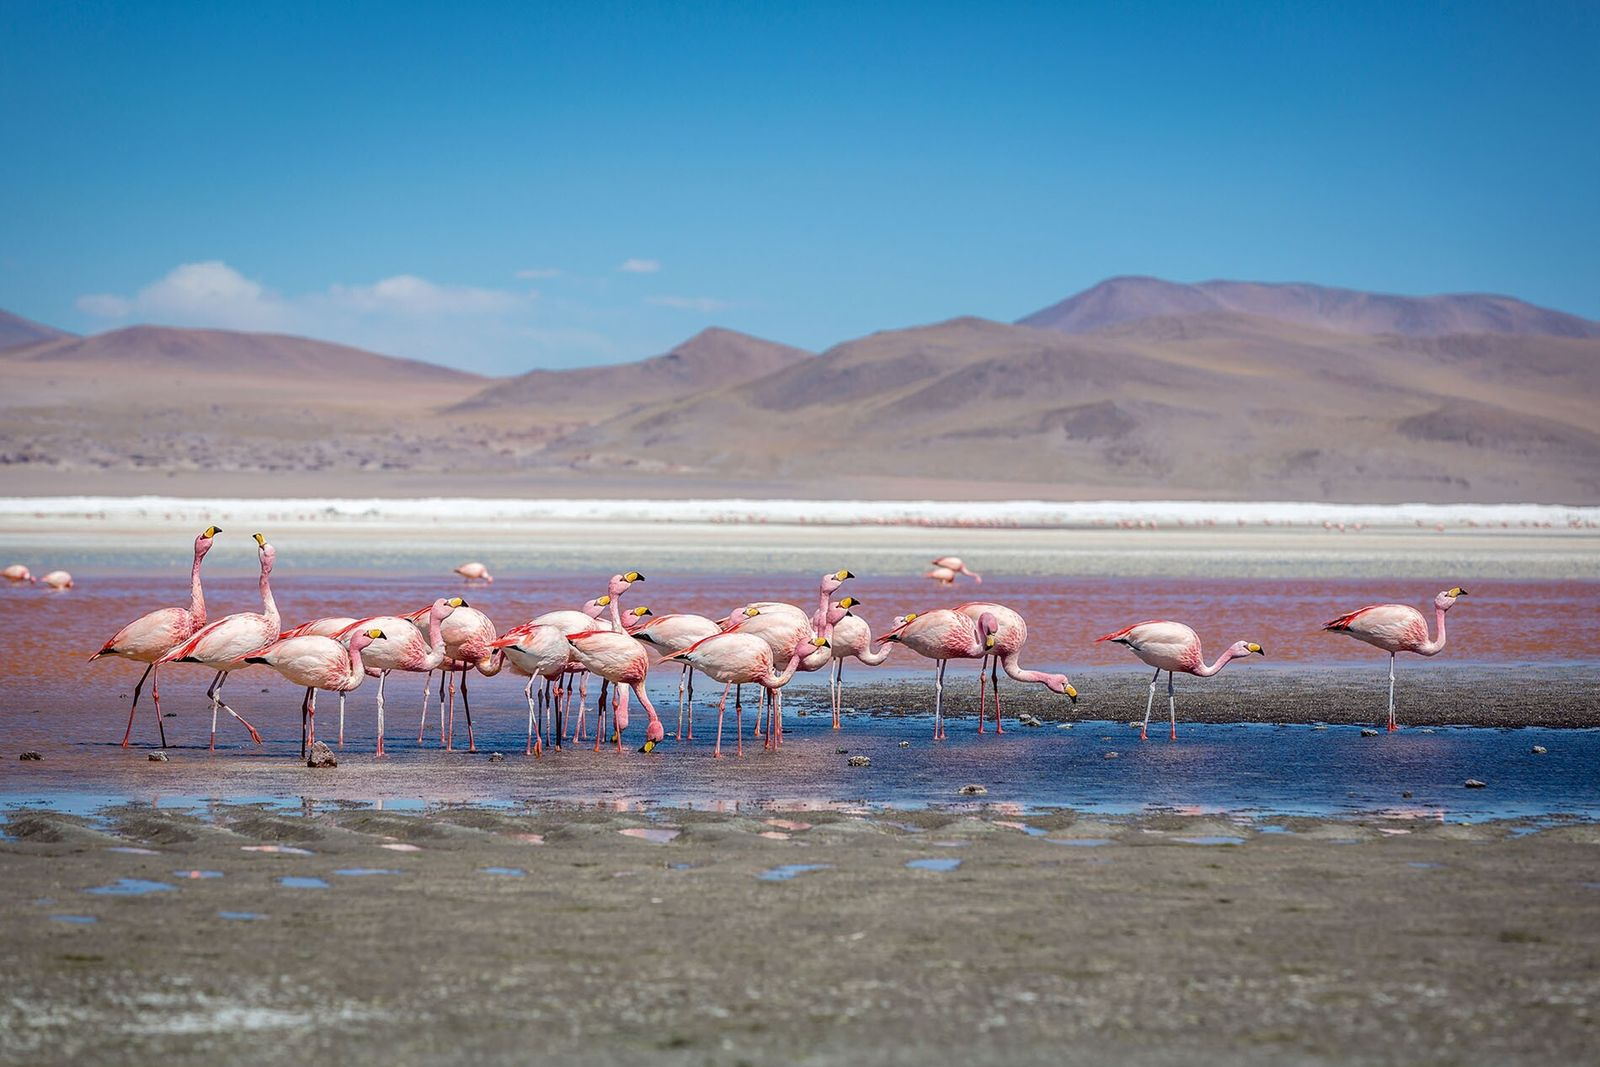 Despite the harsh conditions, the Atacama Desert's high-altitude lakes sustain a variety of wildlife, including Chilean, ...